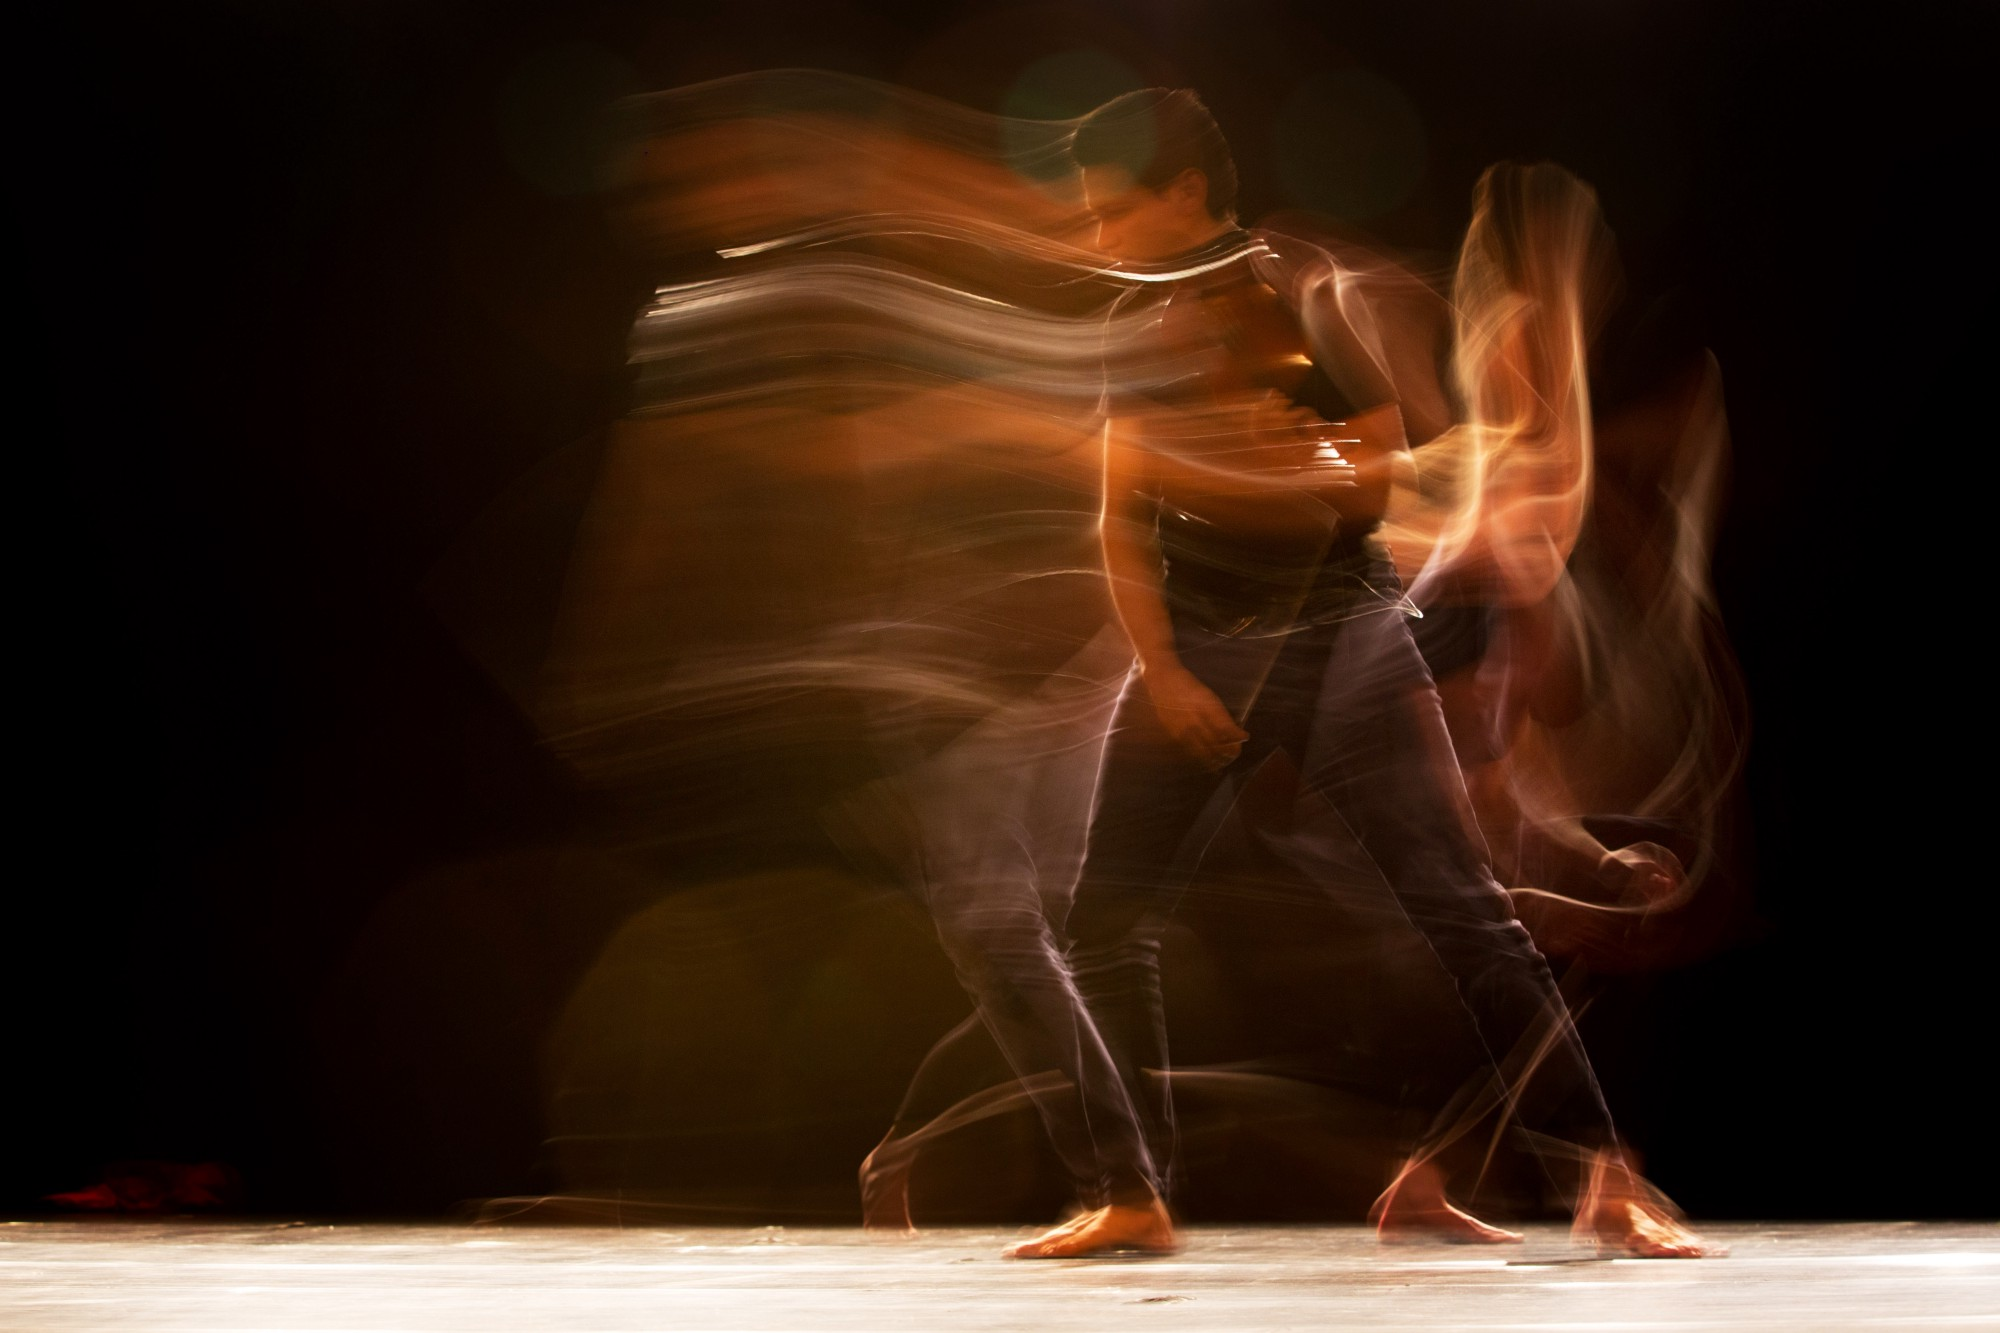 Time lapse photo of man dancing with motion blur